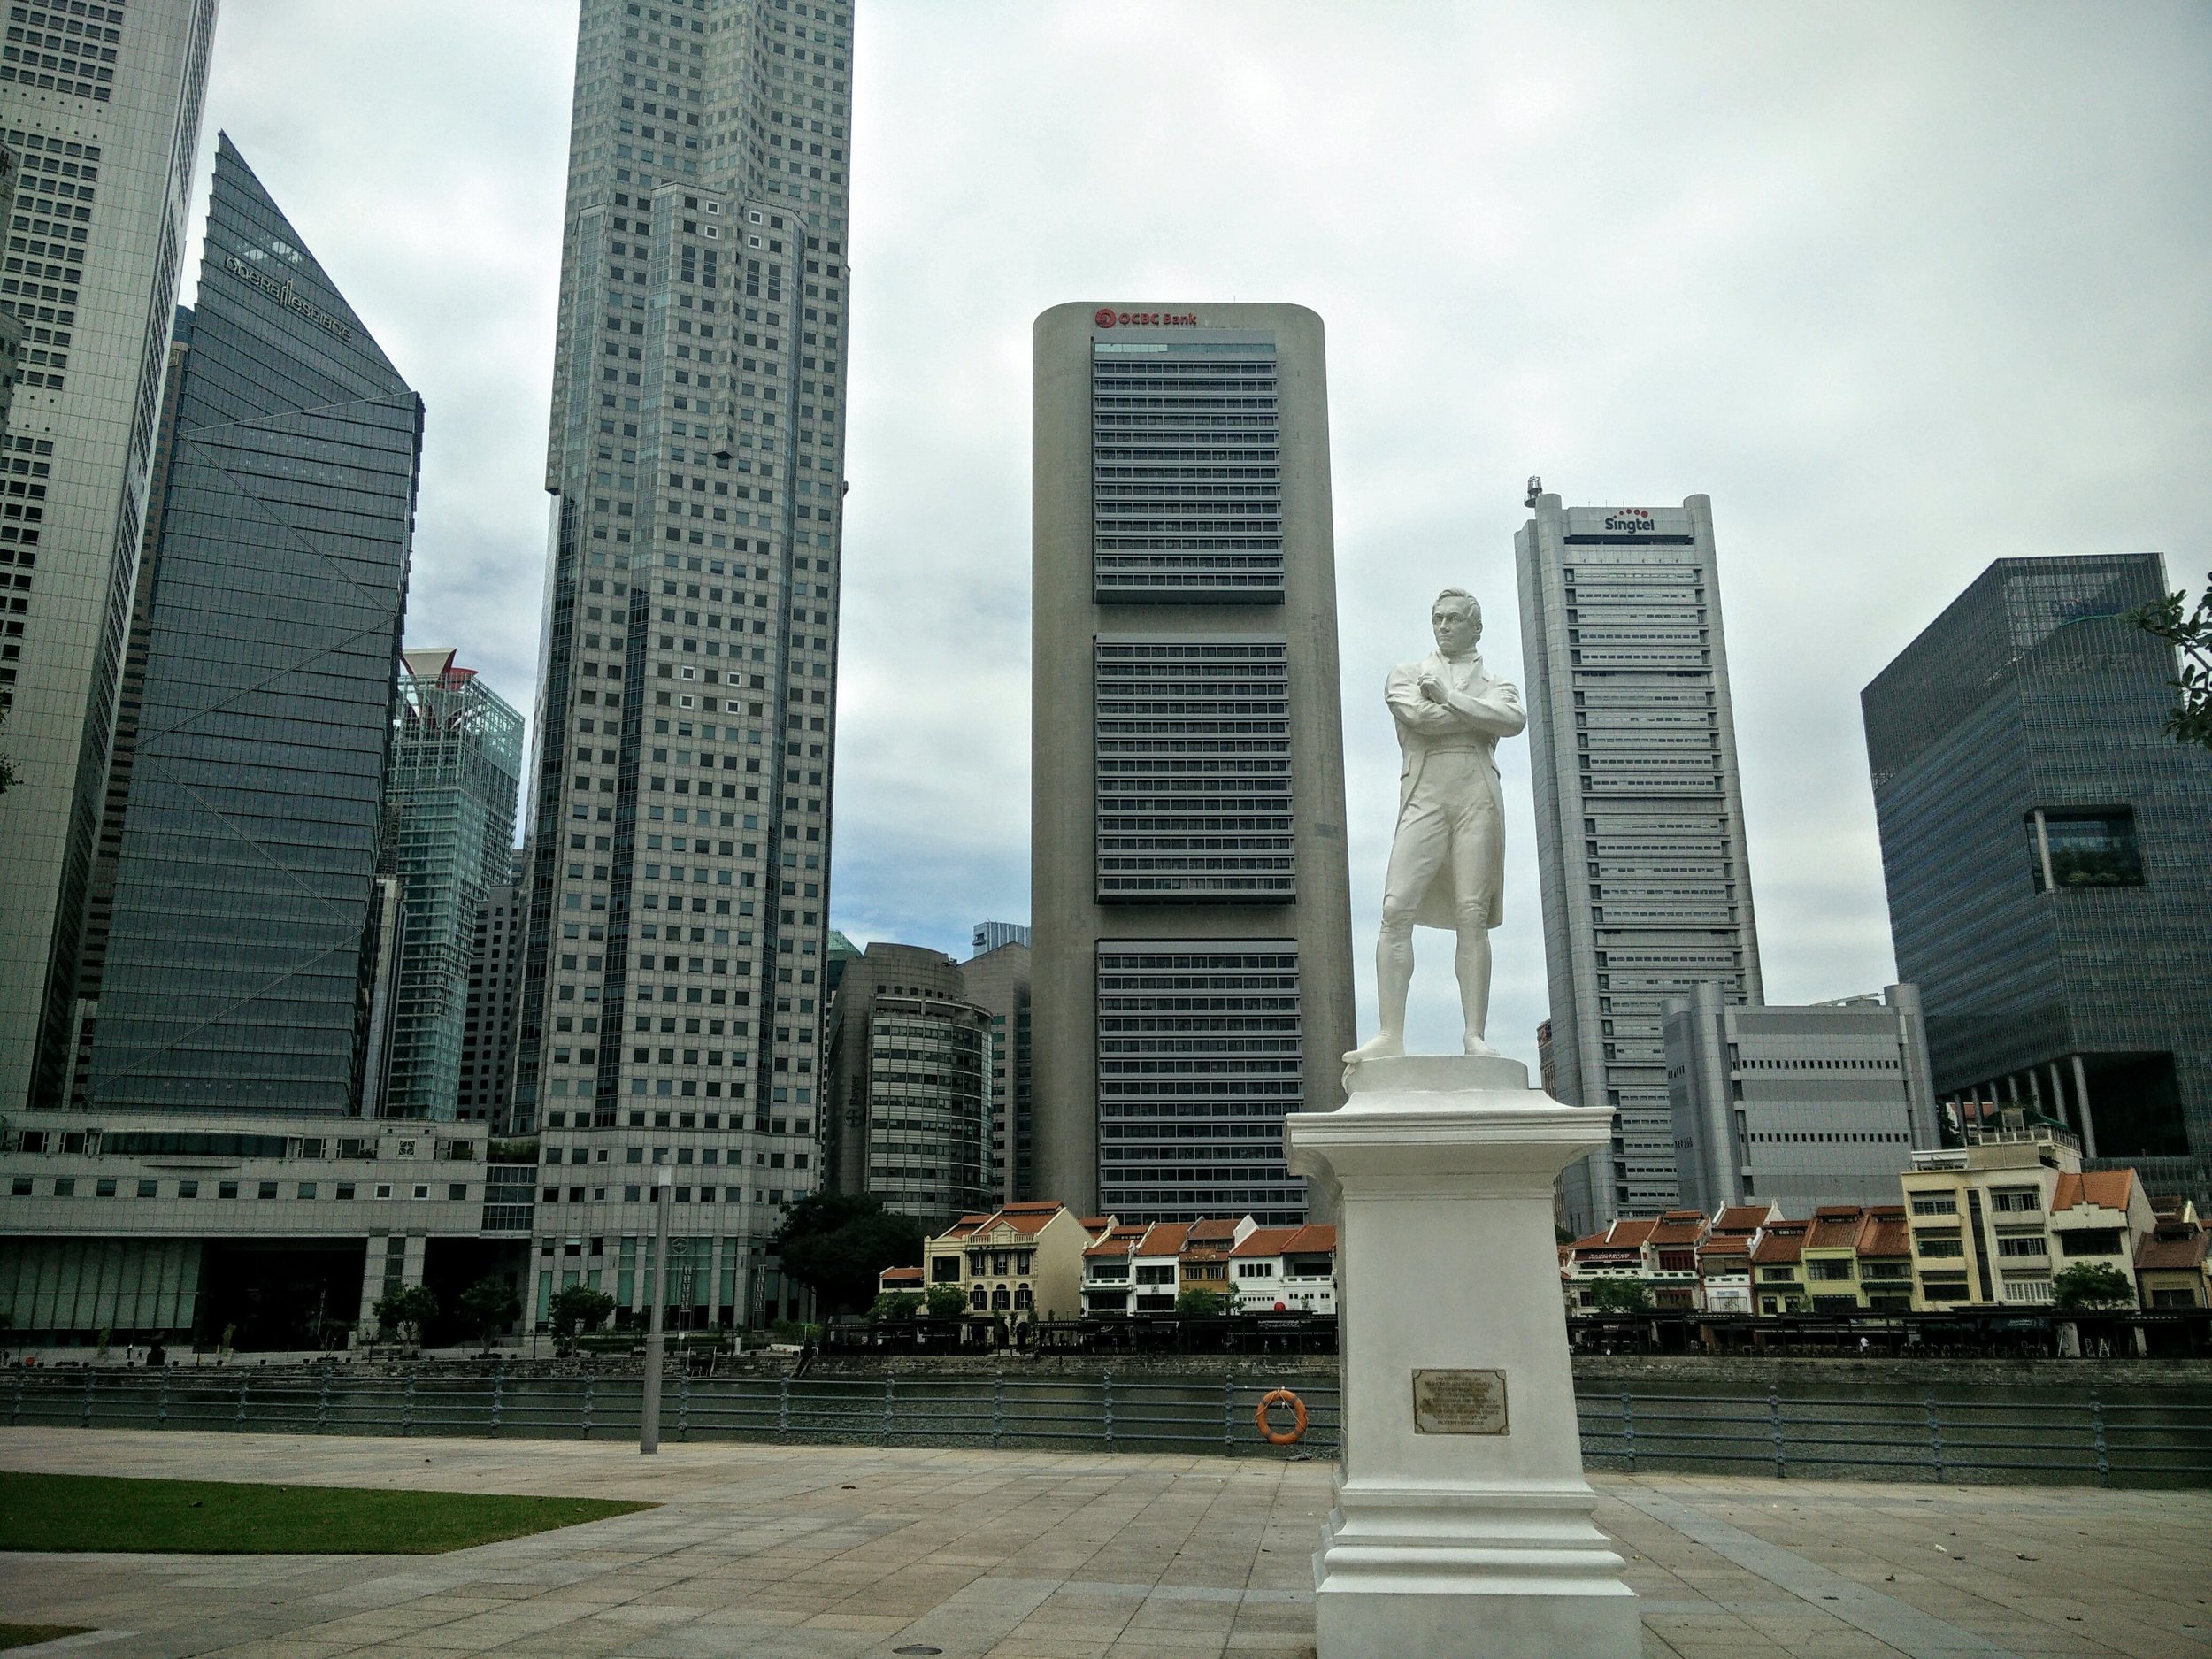 Sir Thomas Stamford Raffles, a British statesman, pictured at his first landing site to Singapore in the 19th century.